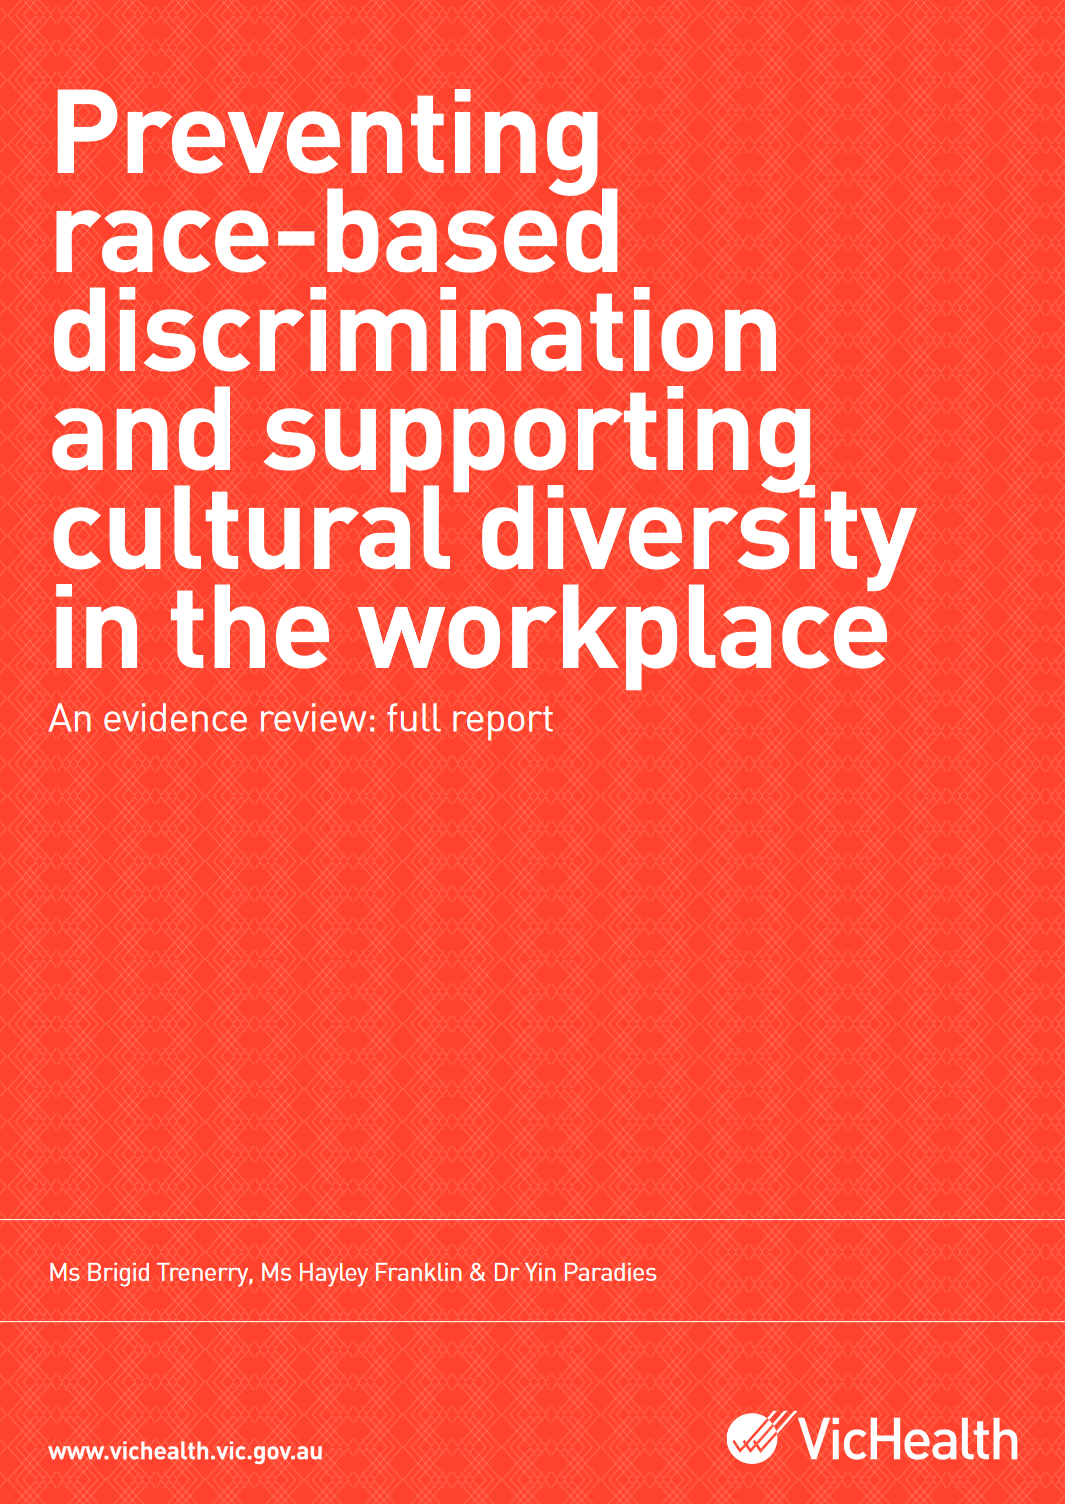 preventing race-based discrimination and supporting cultural diversity in the workplace Preventing race-based discrimination and supporting cultural diversity in the workplace Preventing race based discrimination and supporting cultural diversity capa